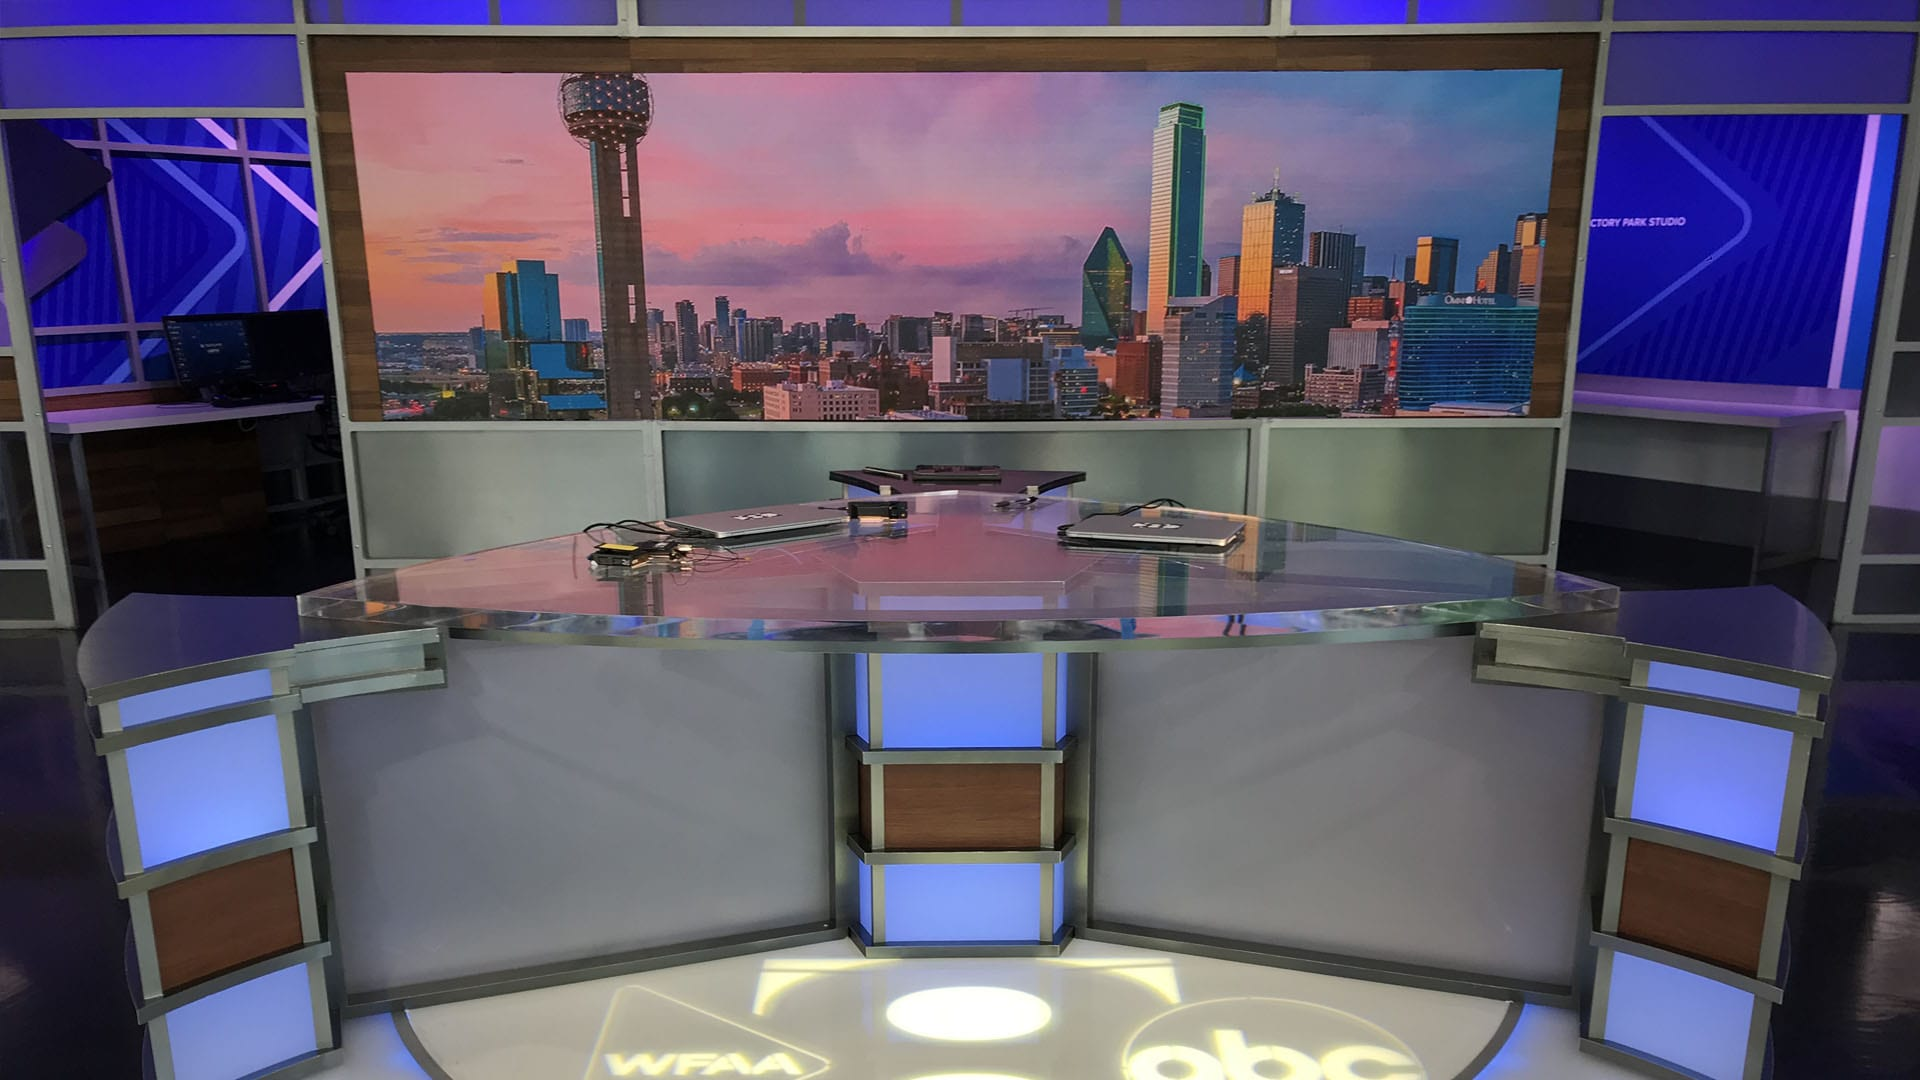 LED UHD video display in TV broadcast studio